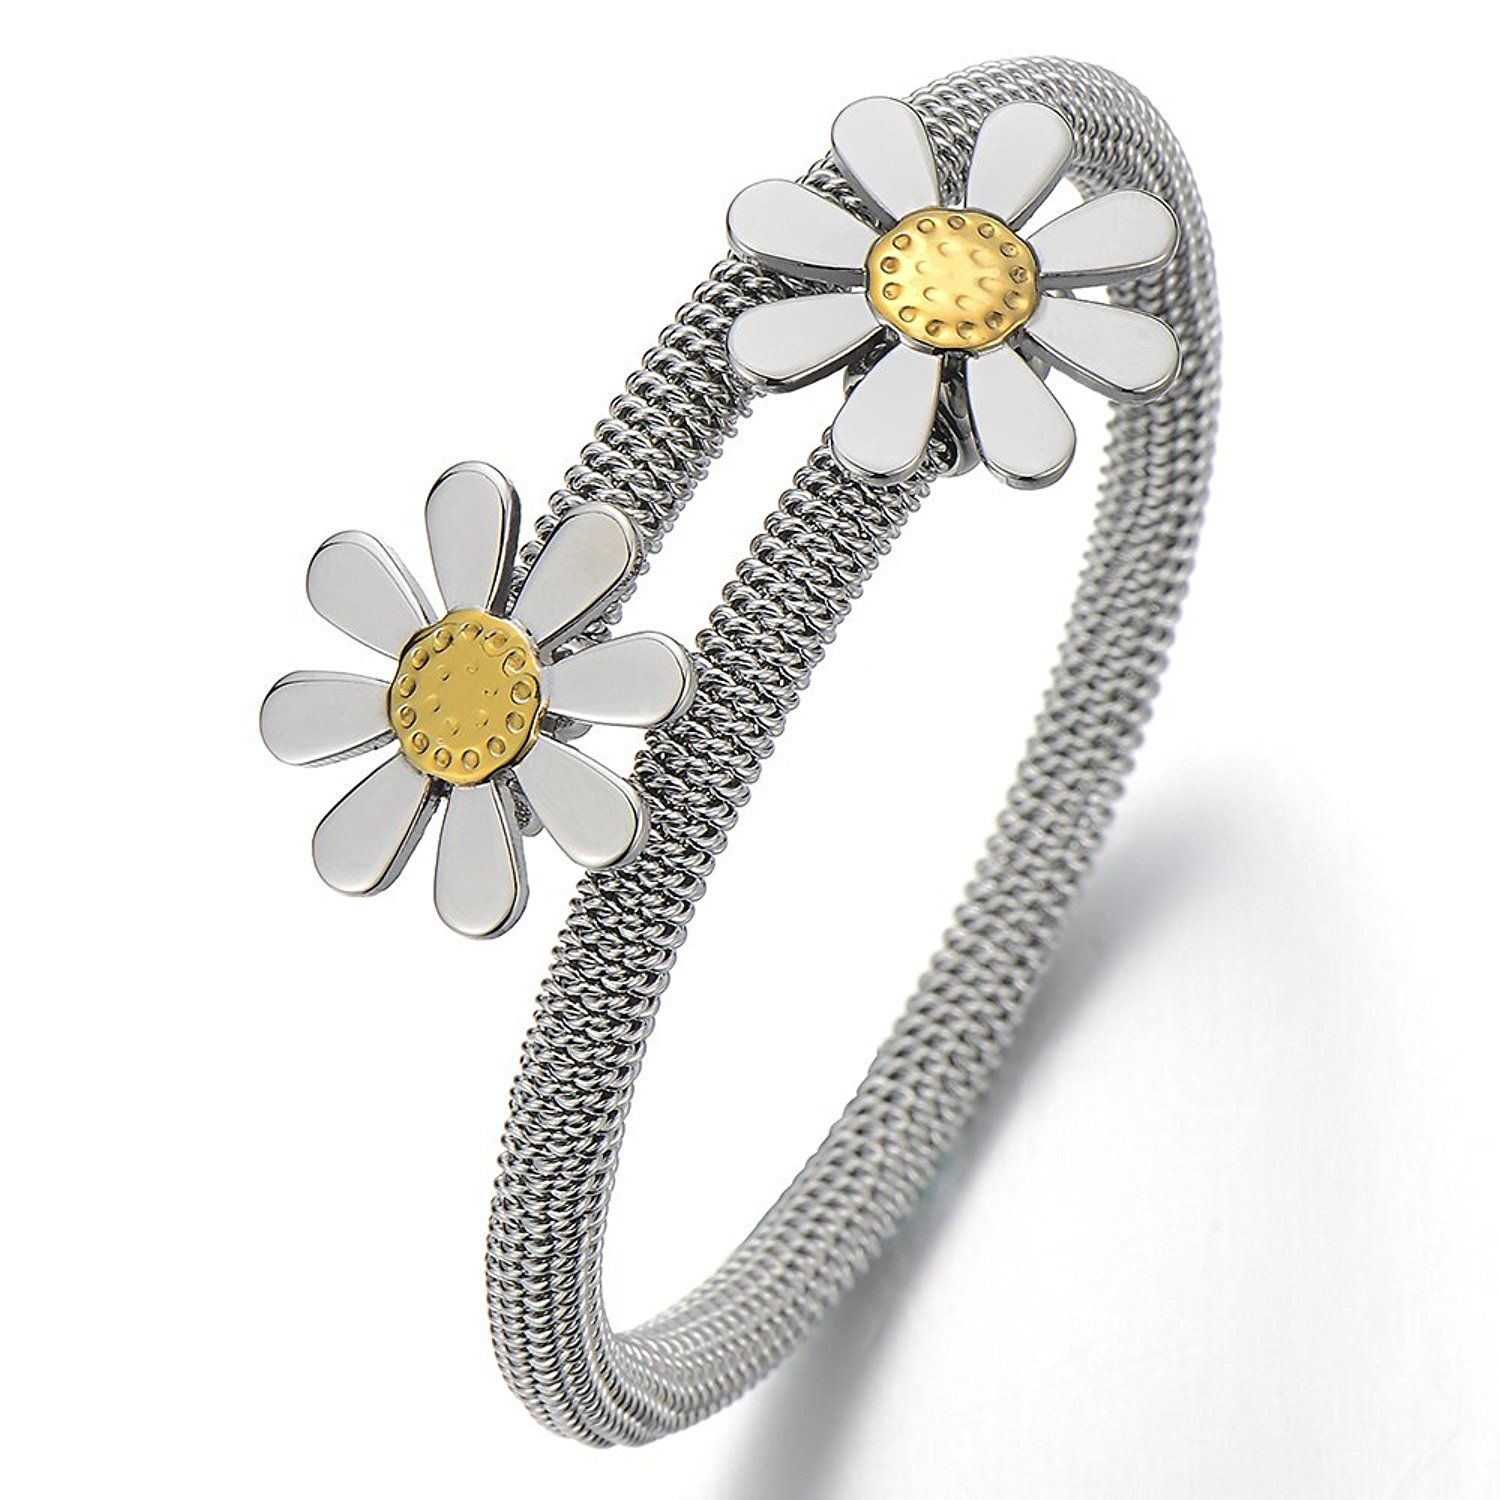 Ladies girls flower stainless steel cuff bangle bracelet silver gold